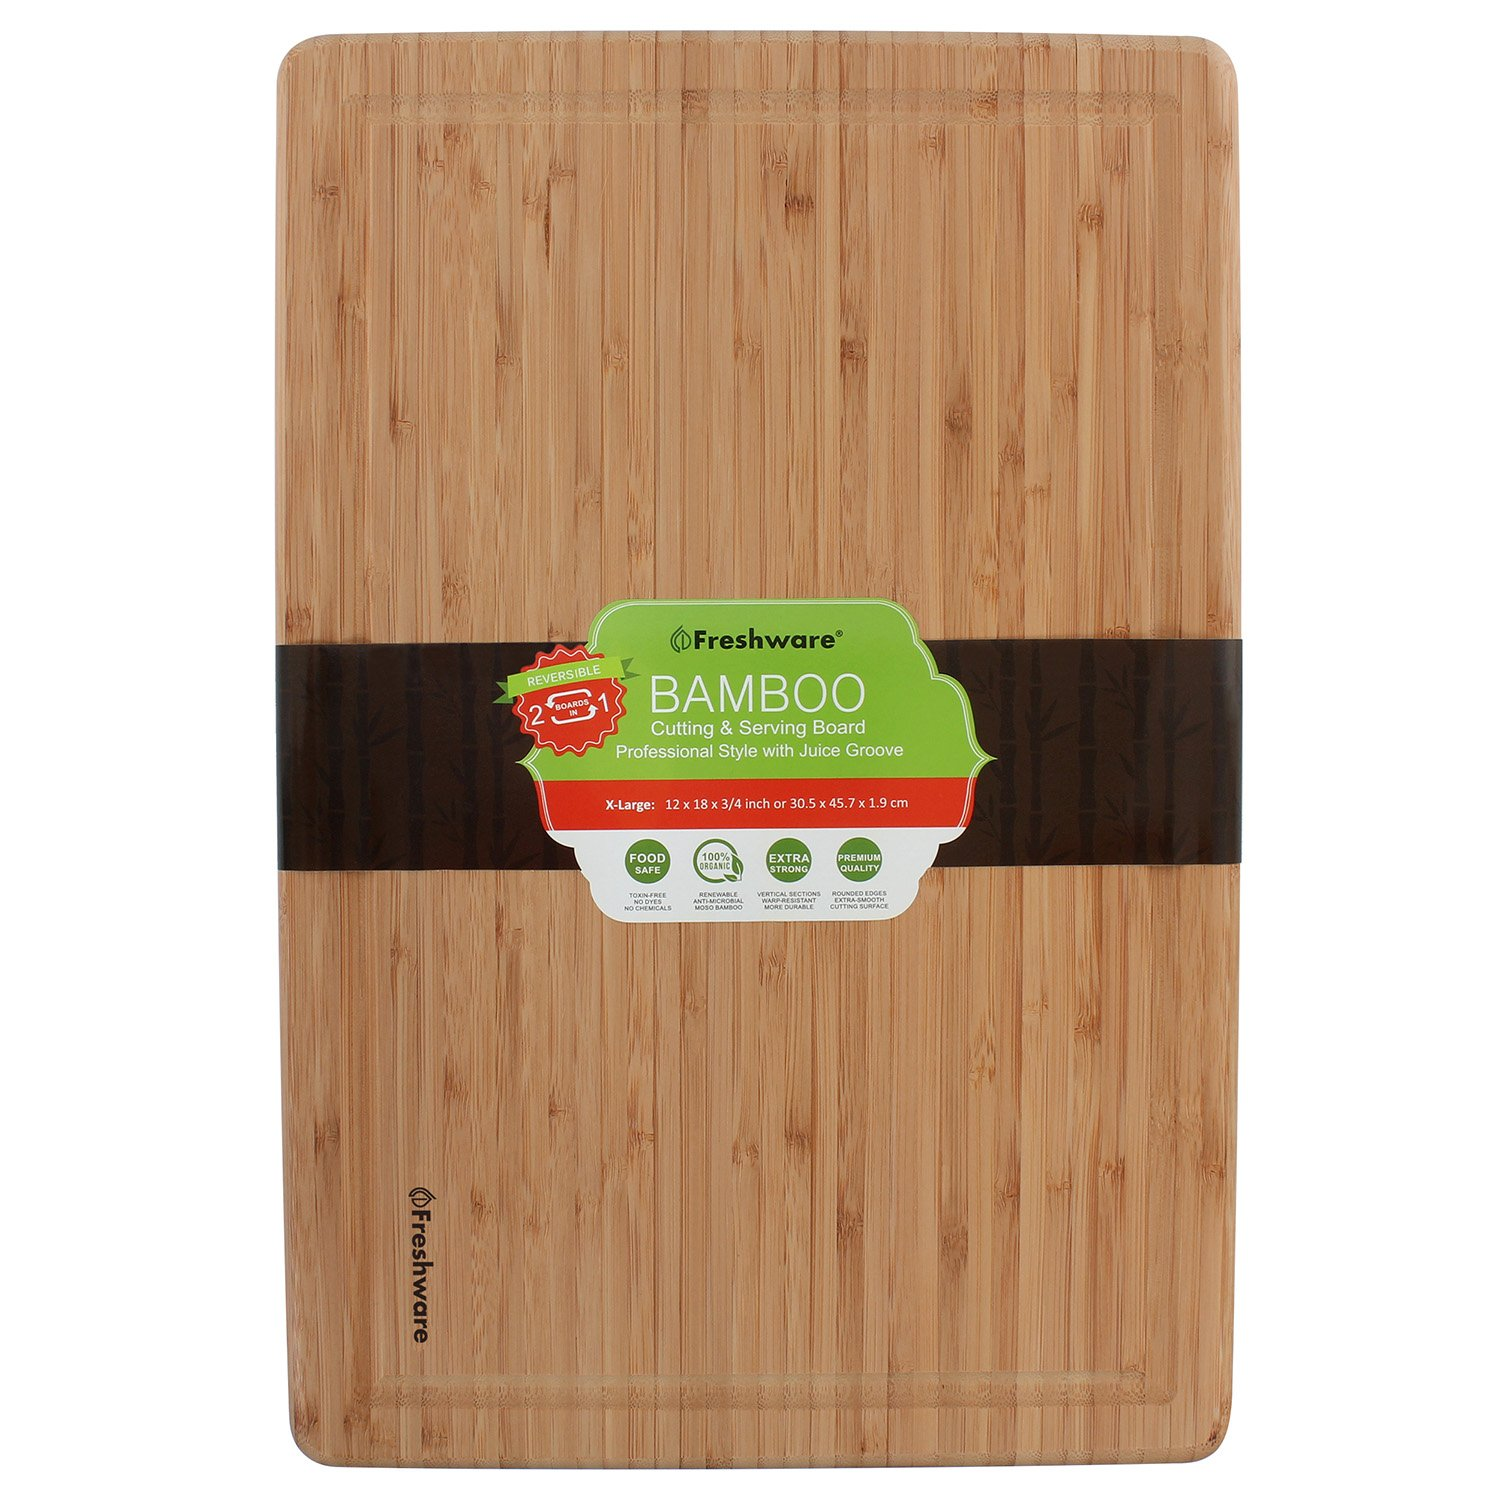 Freshware Bamboo Cutting Board with Juice Groove, Extra Large, 18x12-Inch